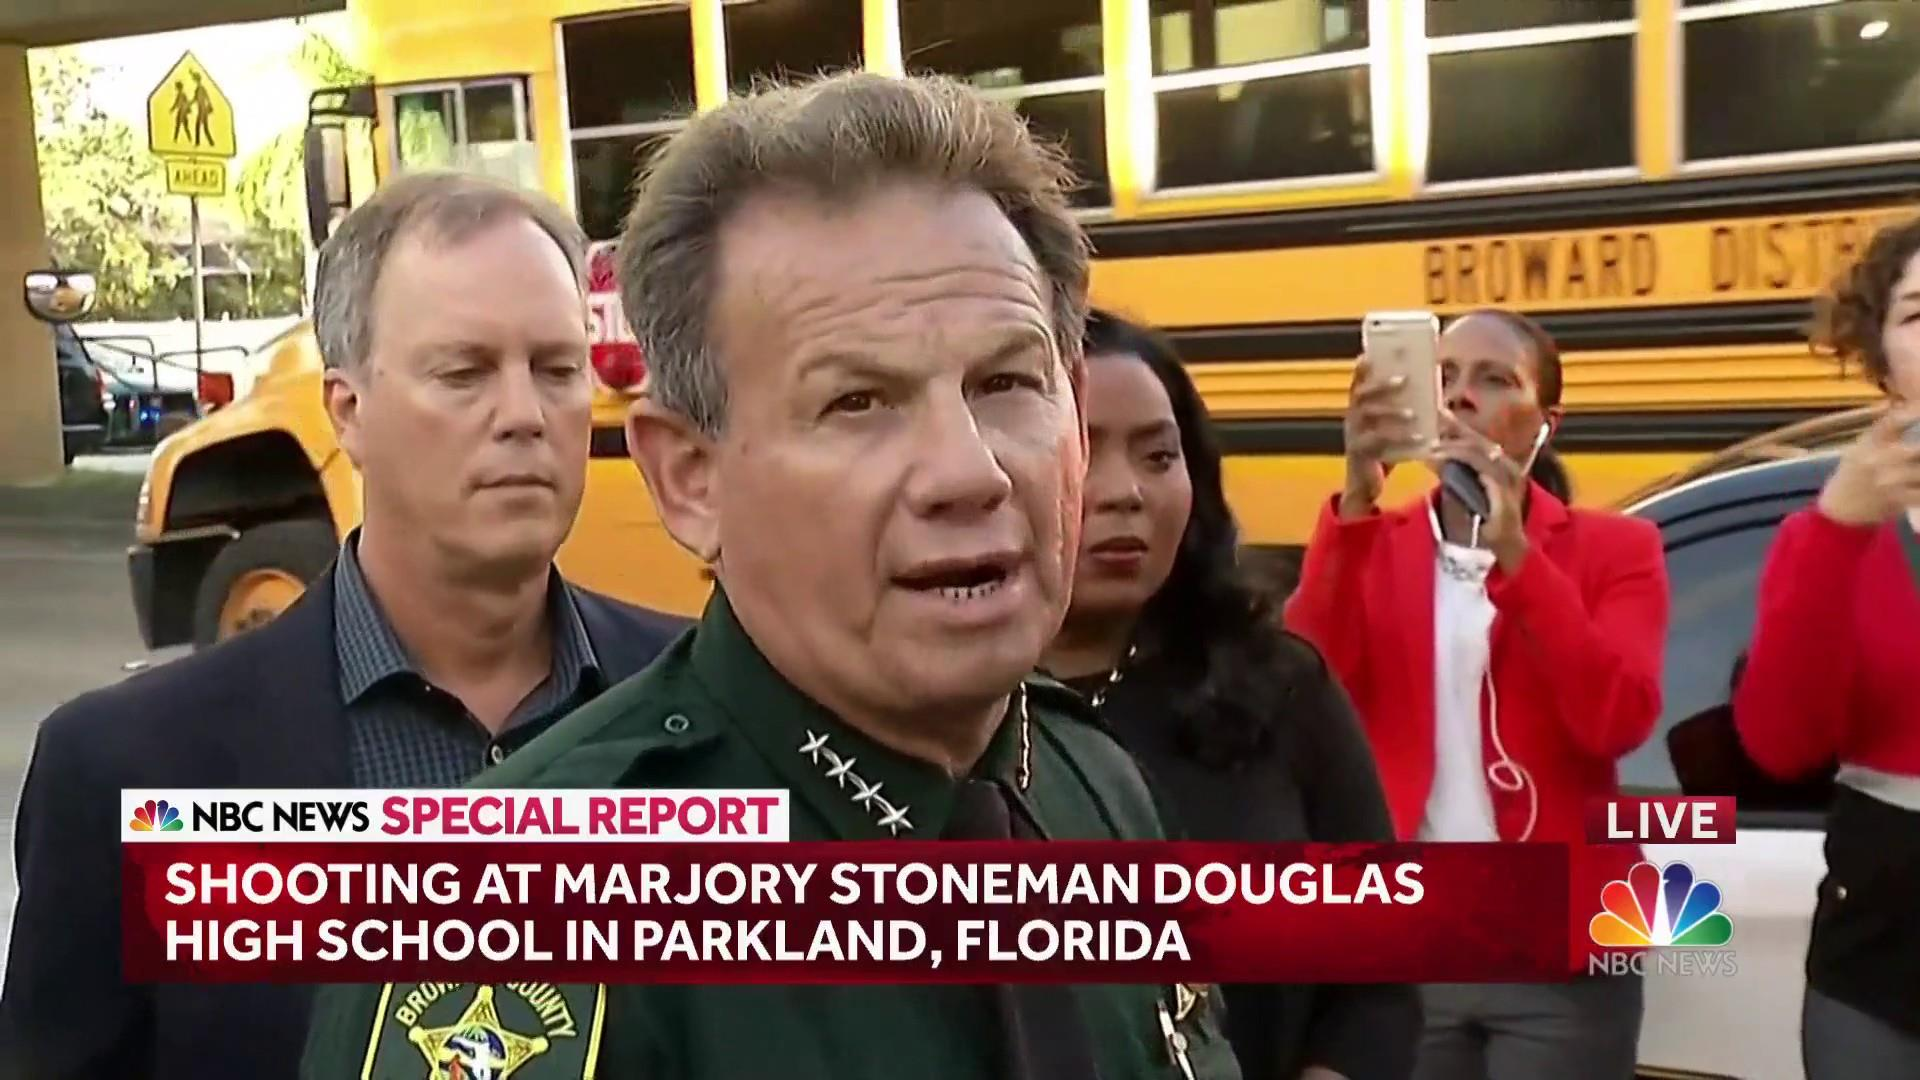 Florida school shooting suspect 'approximately 18 years old', sheriff says